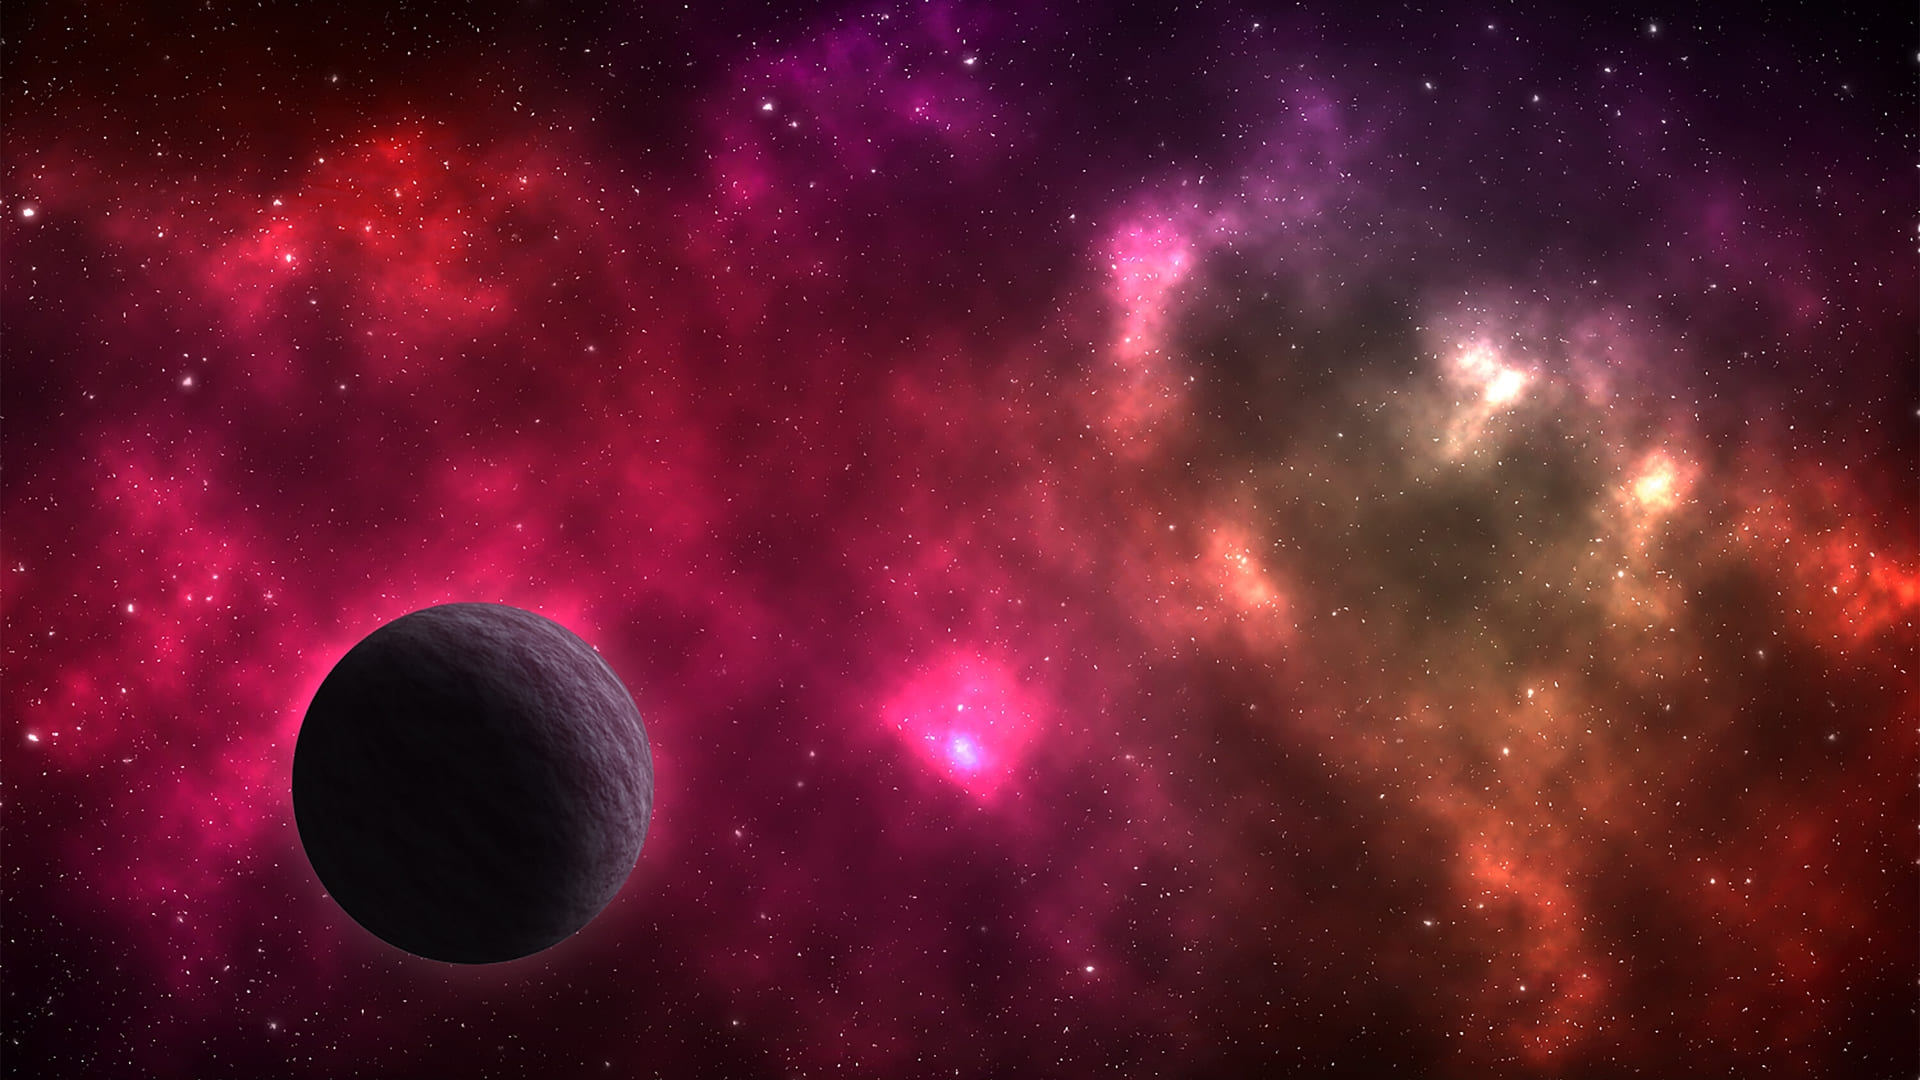 Space background wallpapers